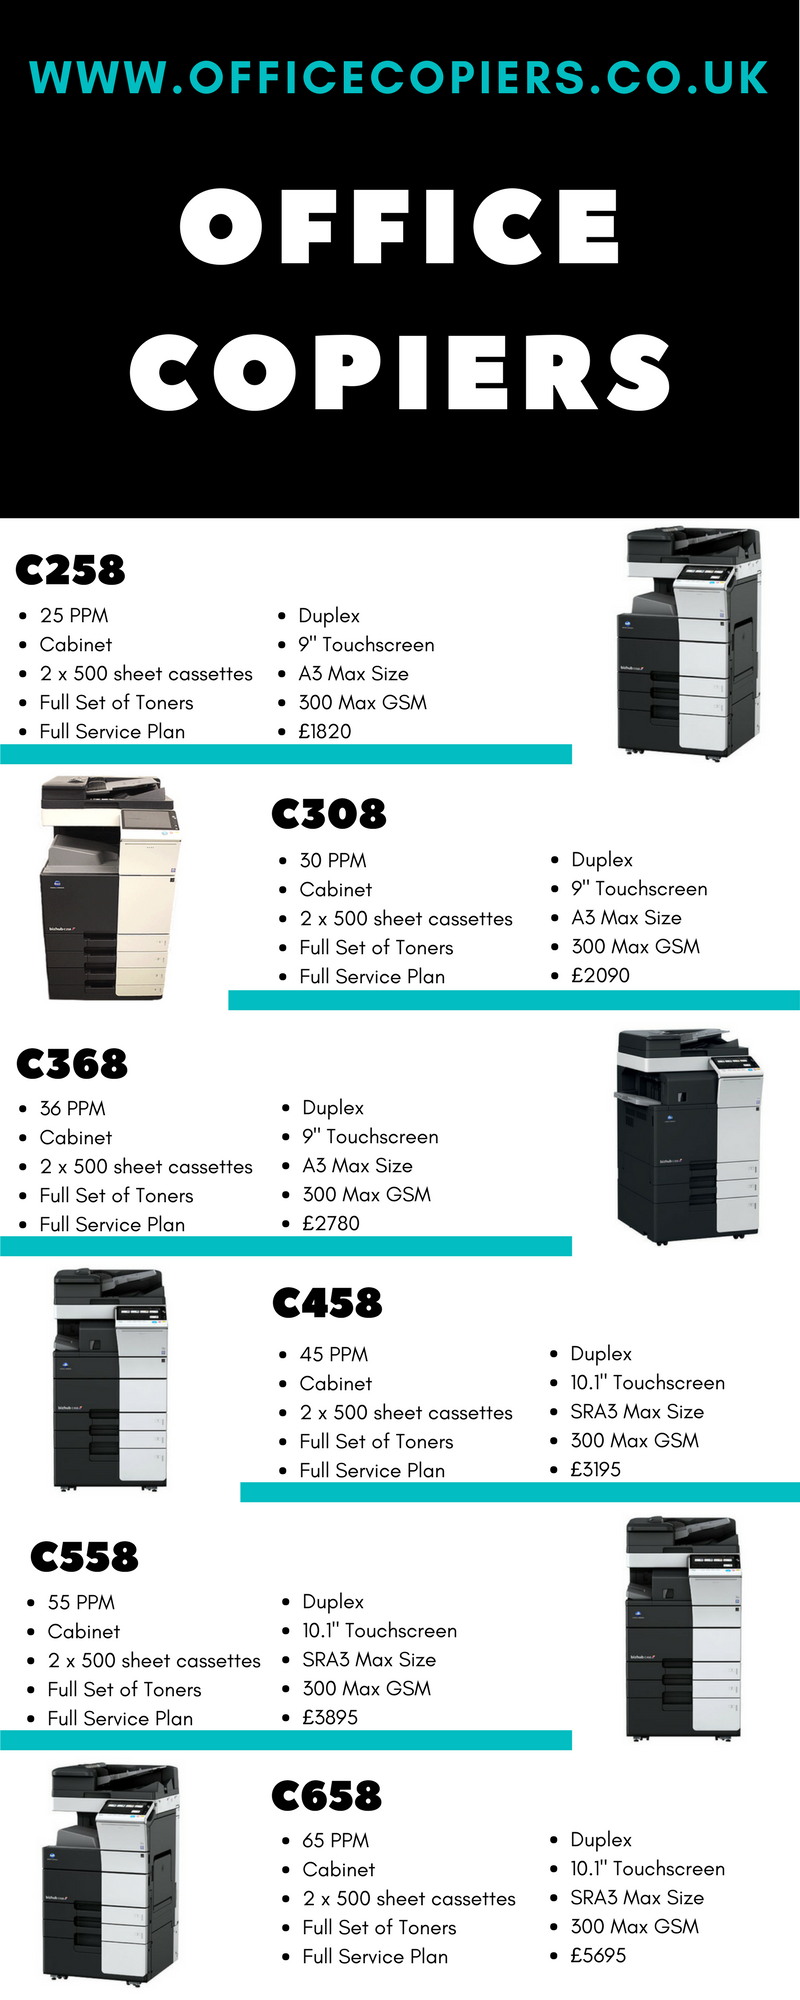 office-copiers-infographic-lkrllc